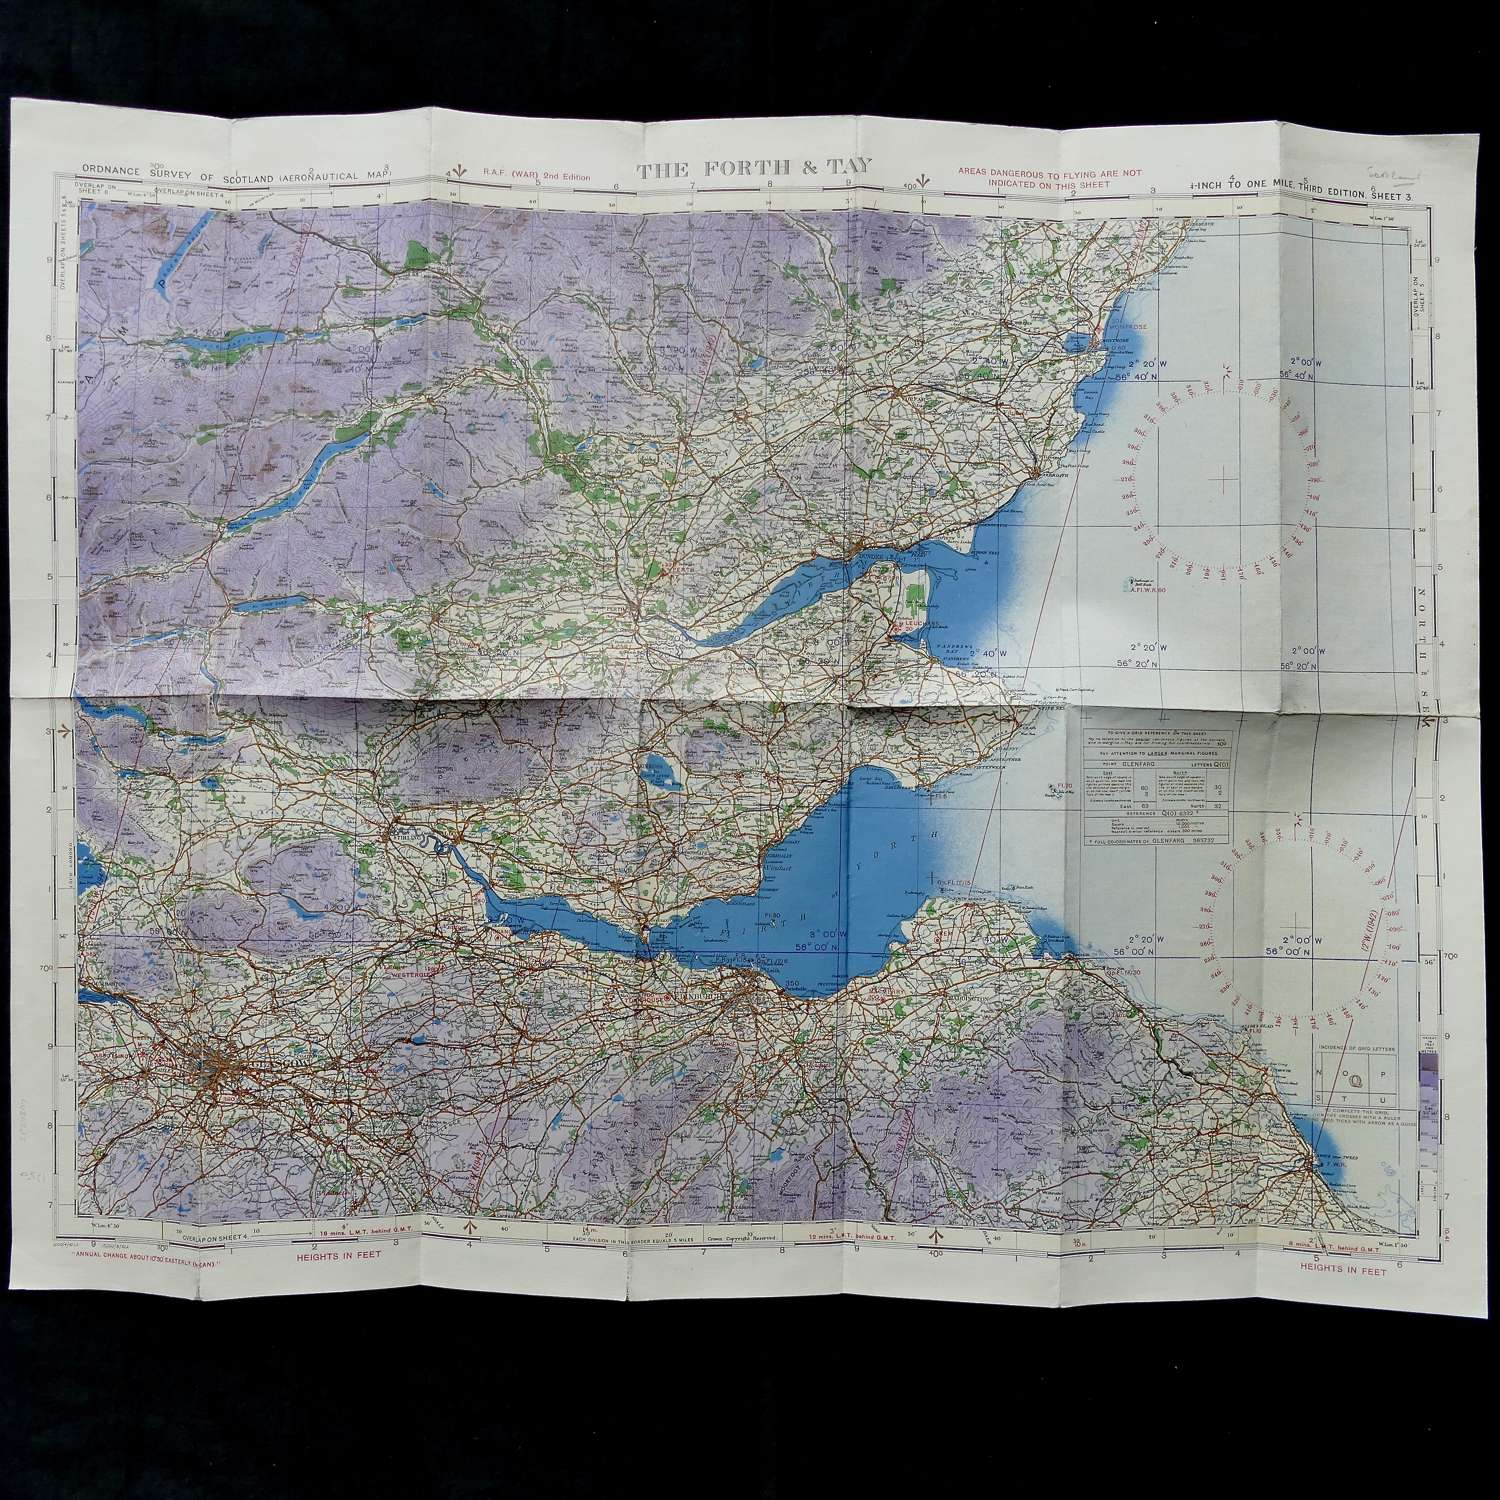 RAF flight map, Scotland - The Forth & Tay